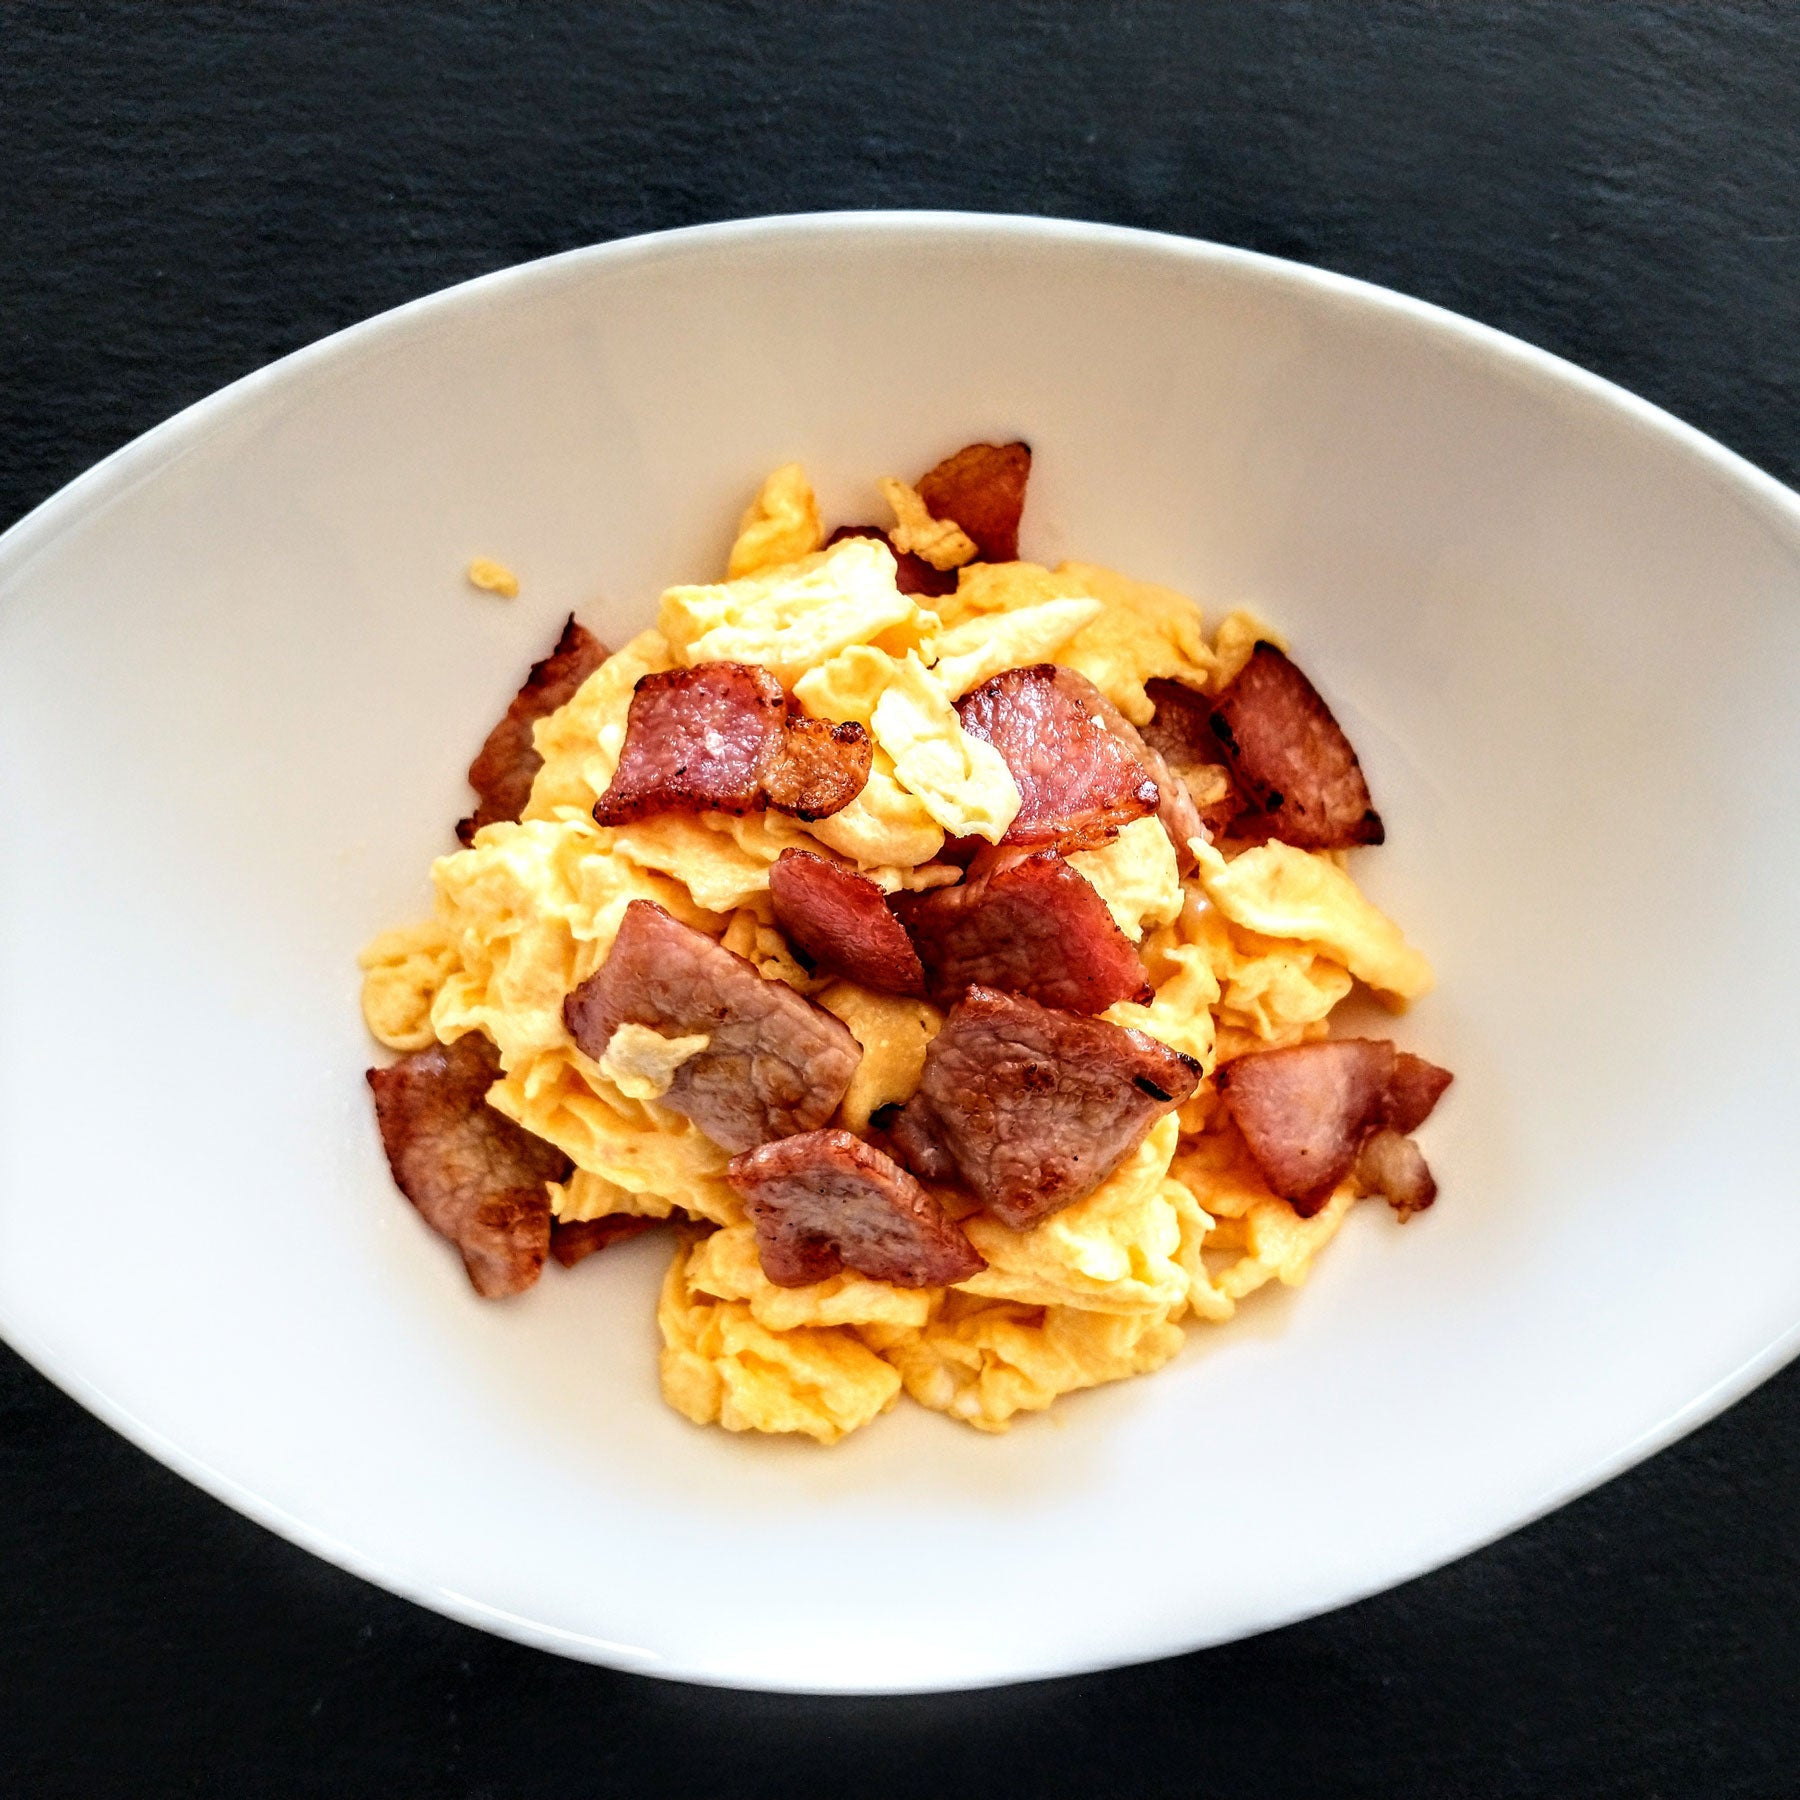 Chunky Scrambled Eggs with Bacon Pieces